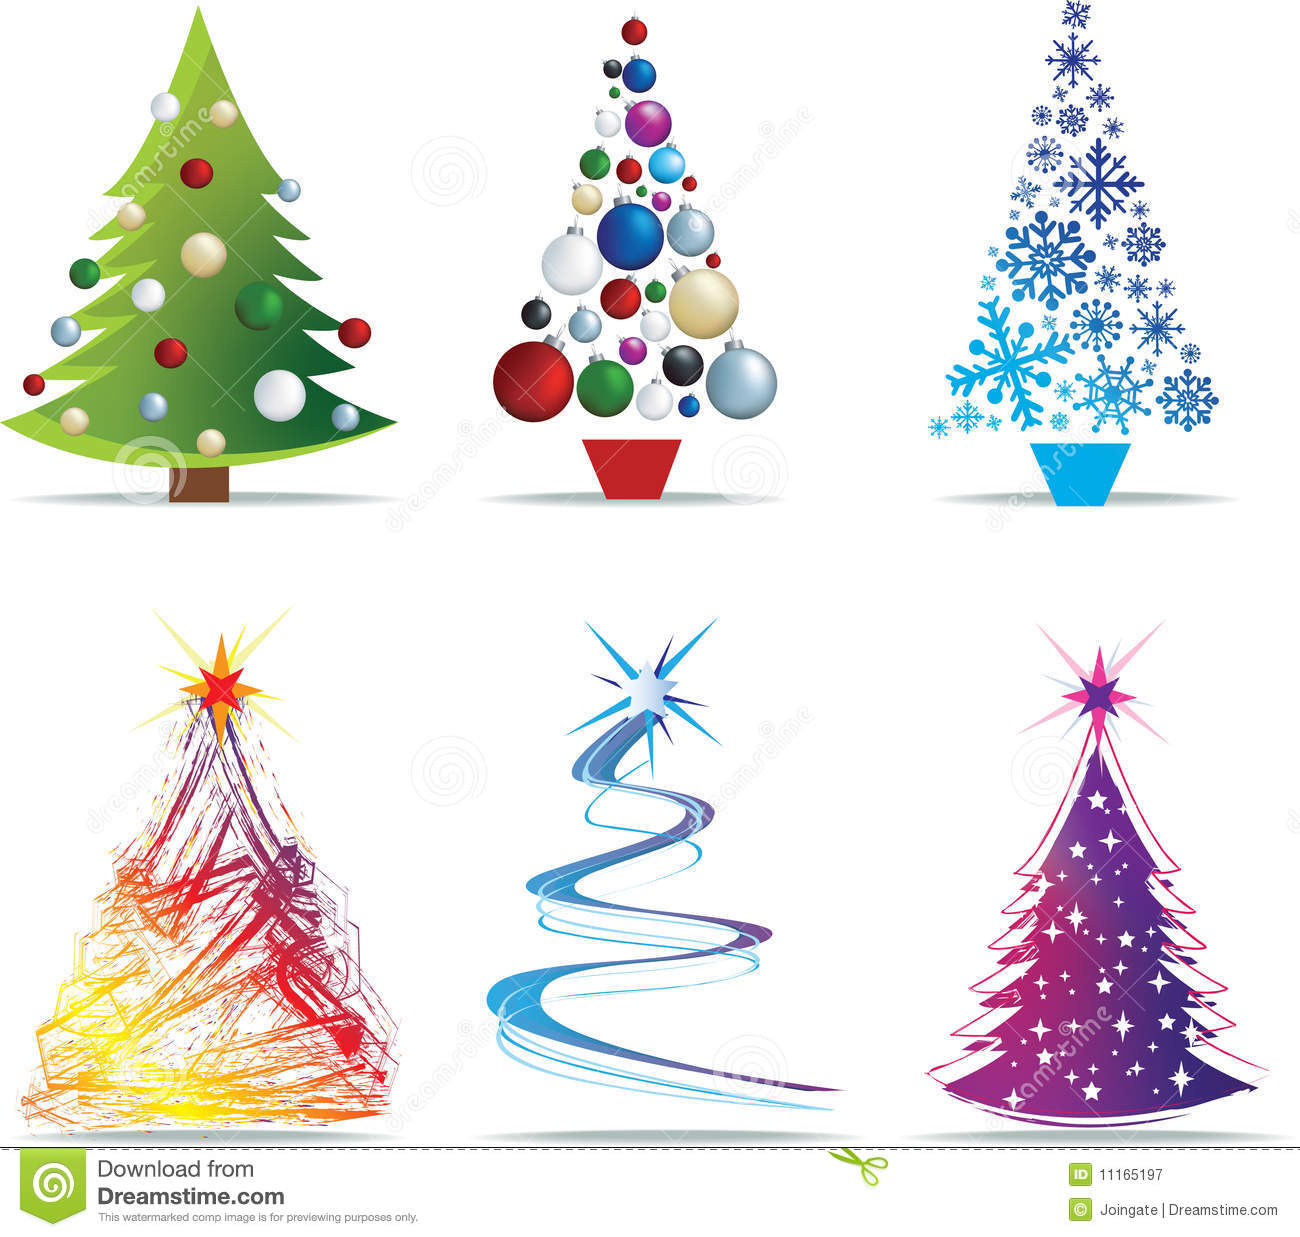 Christmas Tree Cliparts: Christmas Tree Modern Illustrations Stock Vector